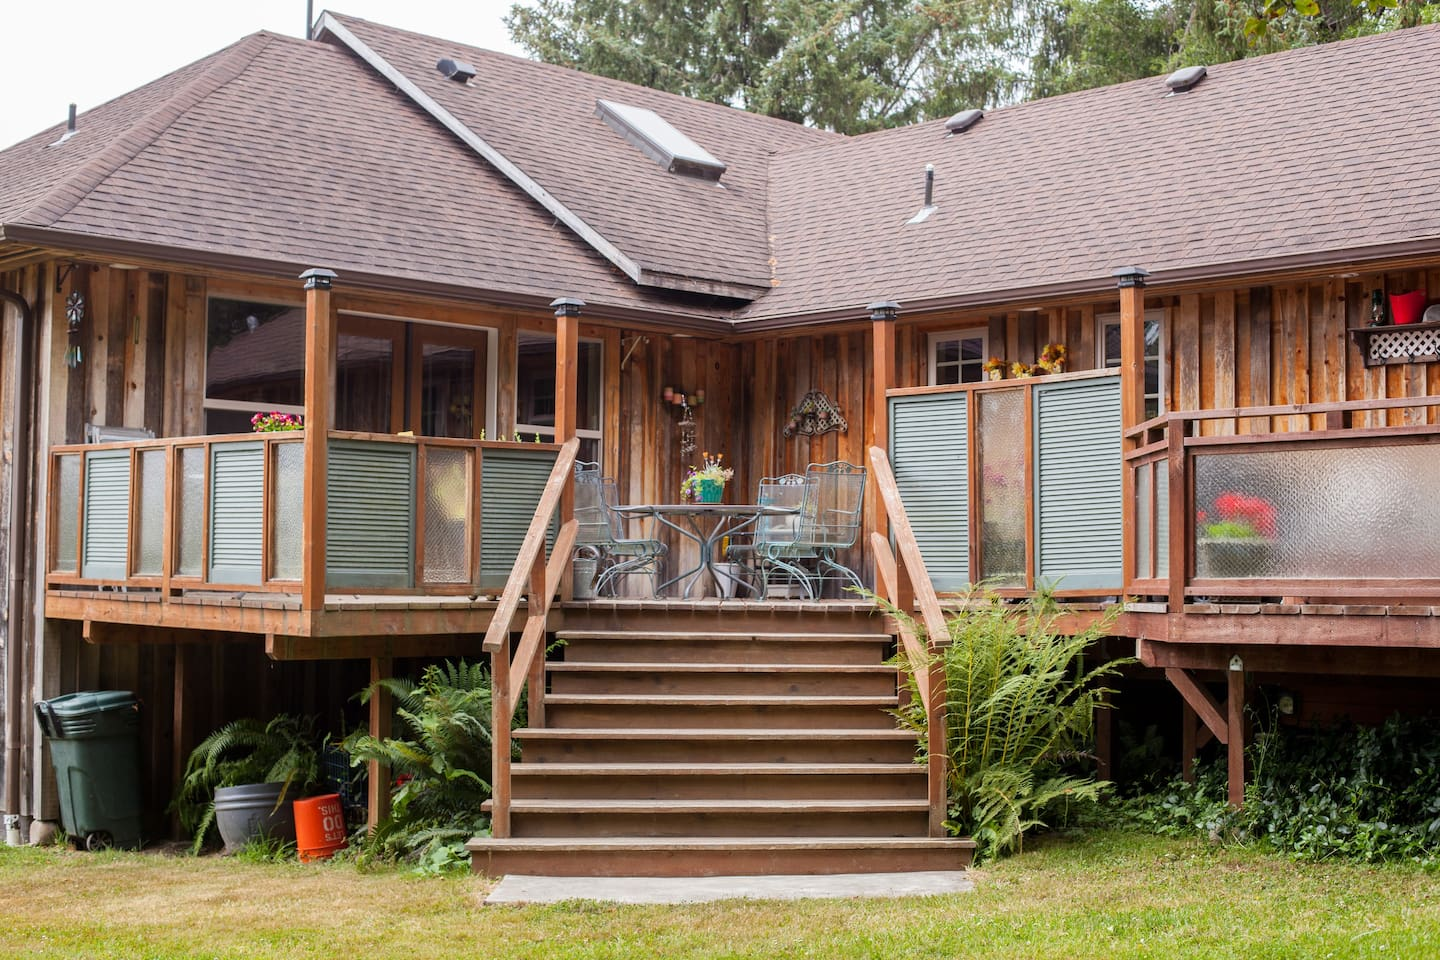 South facing entrance to your Elk House Retreat. Just off the perimeter of the Jedediah Smith National/State park & about 2 miles from beach. Great location for exploring miles of hiking & biking trails in redwoods & nearby beaches & attractions.